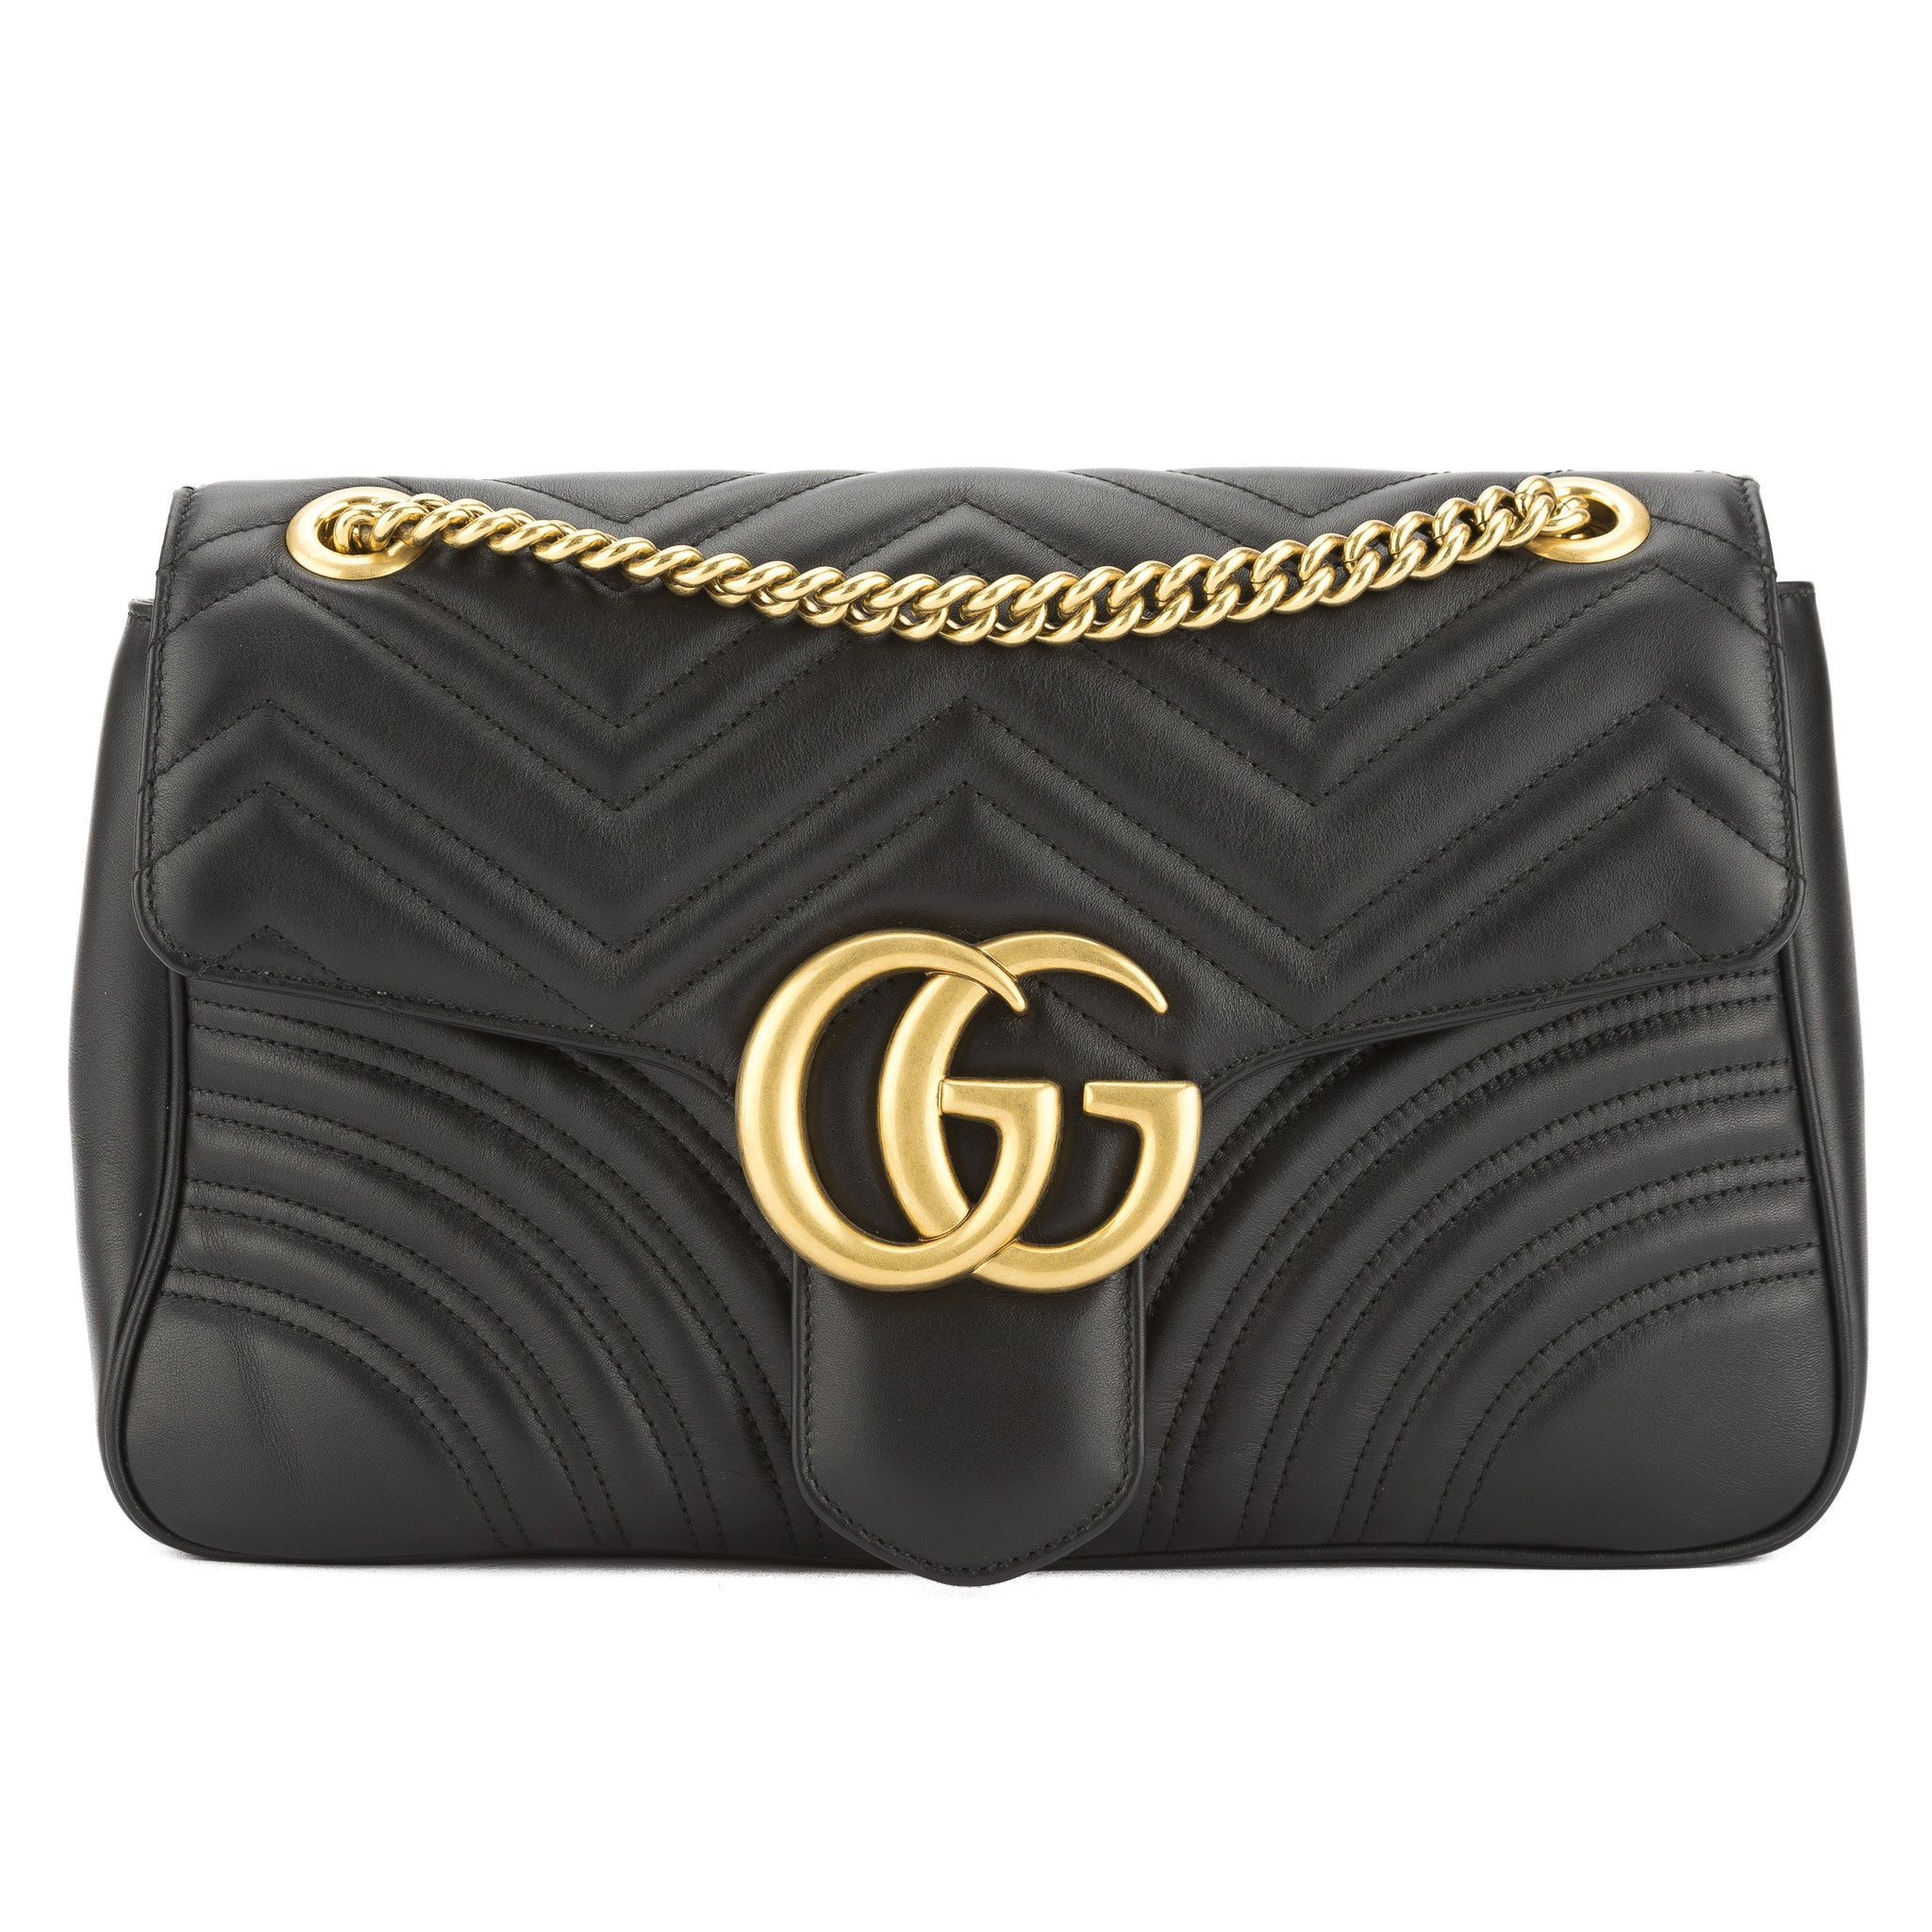 bf7e35b89d1 Gucci Black Leather GG Marmont Matelasse Shoulder Bag (New with Tags ...